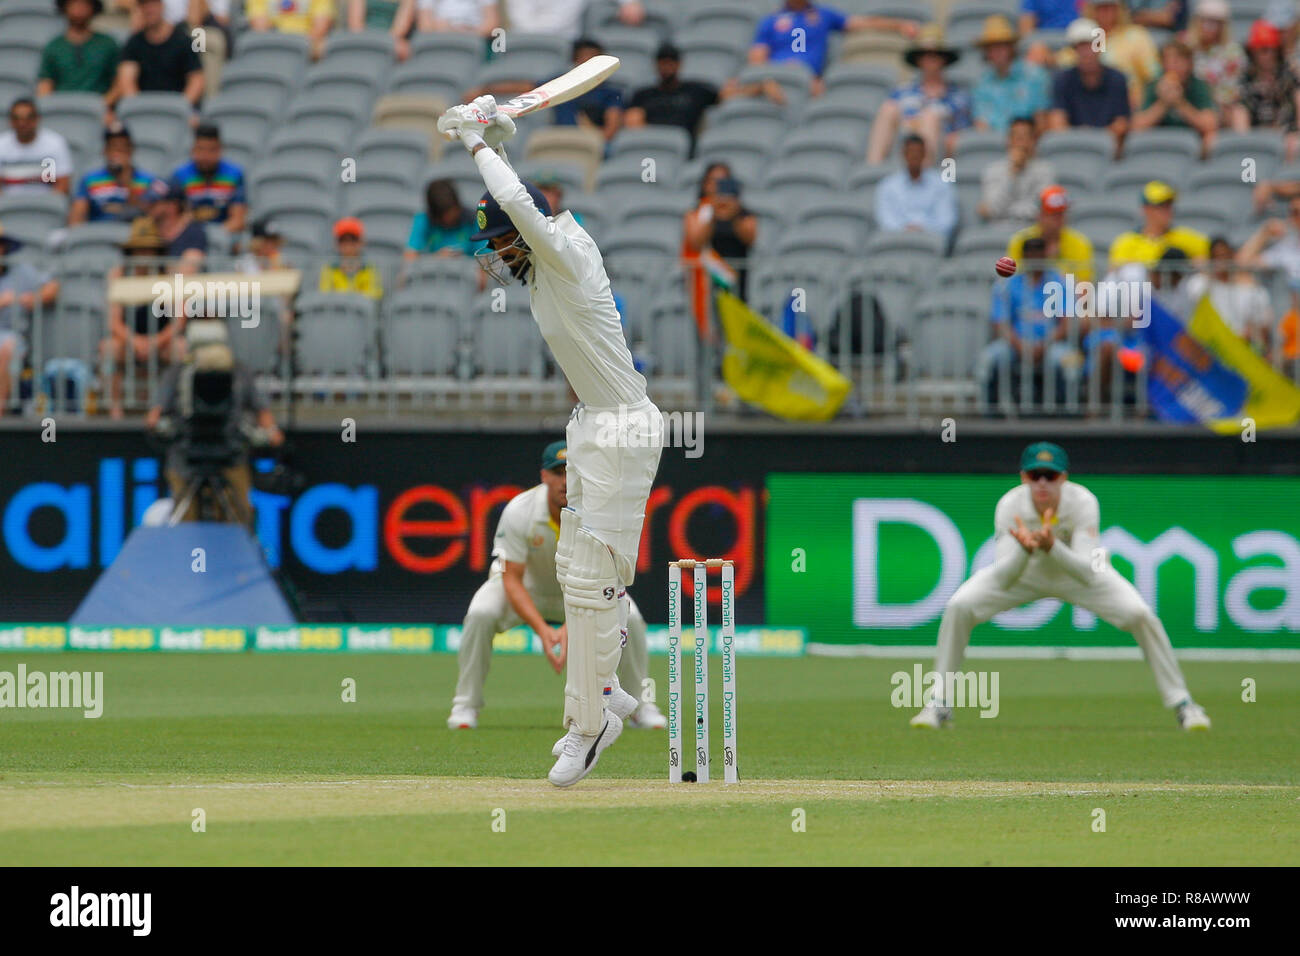 Optus Stadium, Perth, Australia. 15th Dec, 2018. International Test Series Cricket, Australia versus India, second test, day 2; KL Rahul of India lets the ball go outside of off stump Credit: Action Plus Sports/Alamy Live News - Stock Image